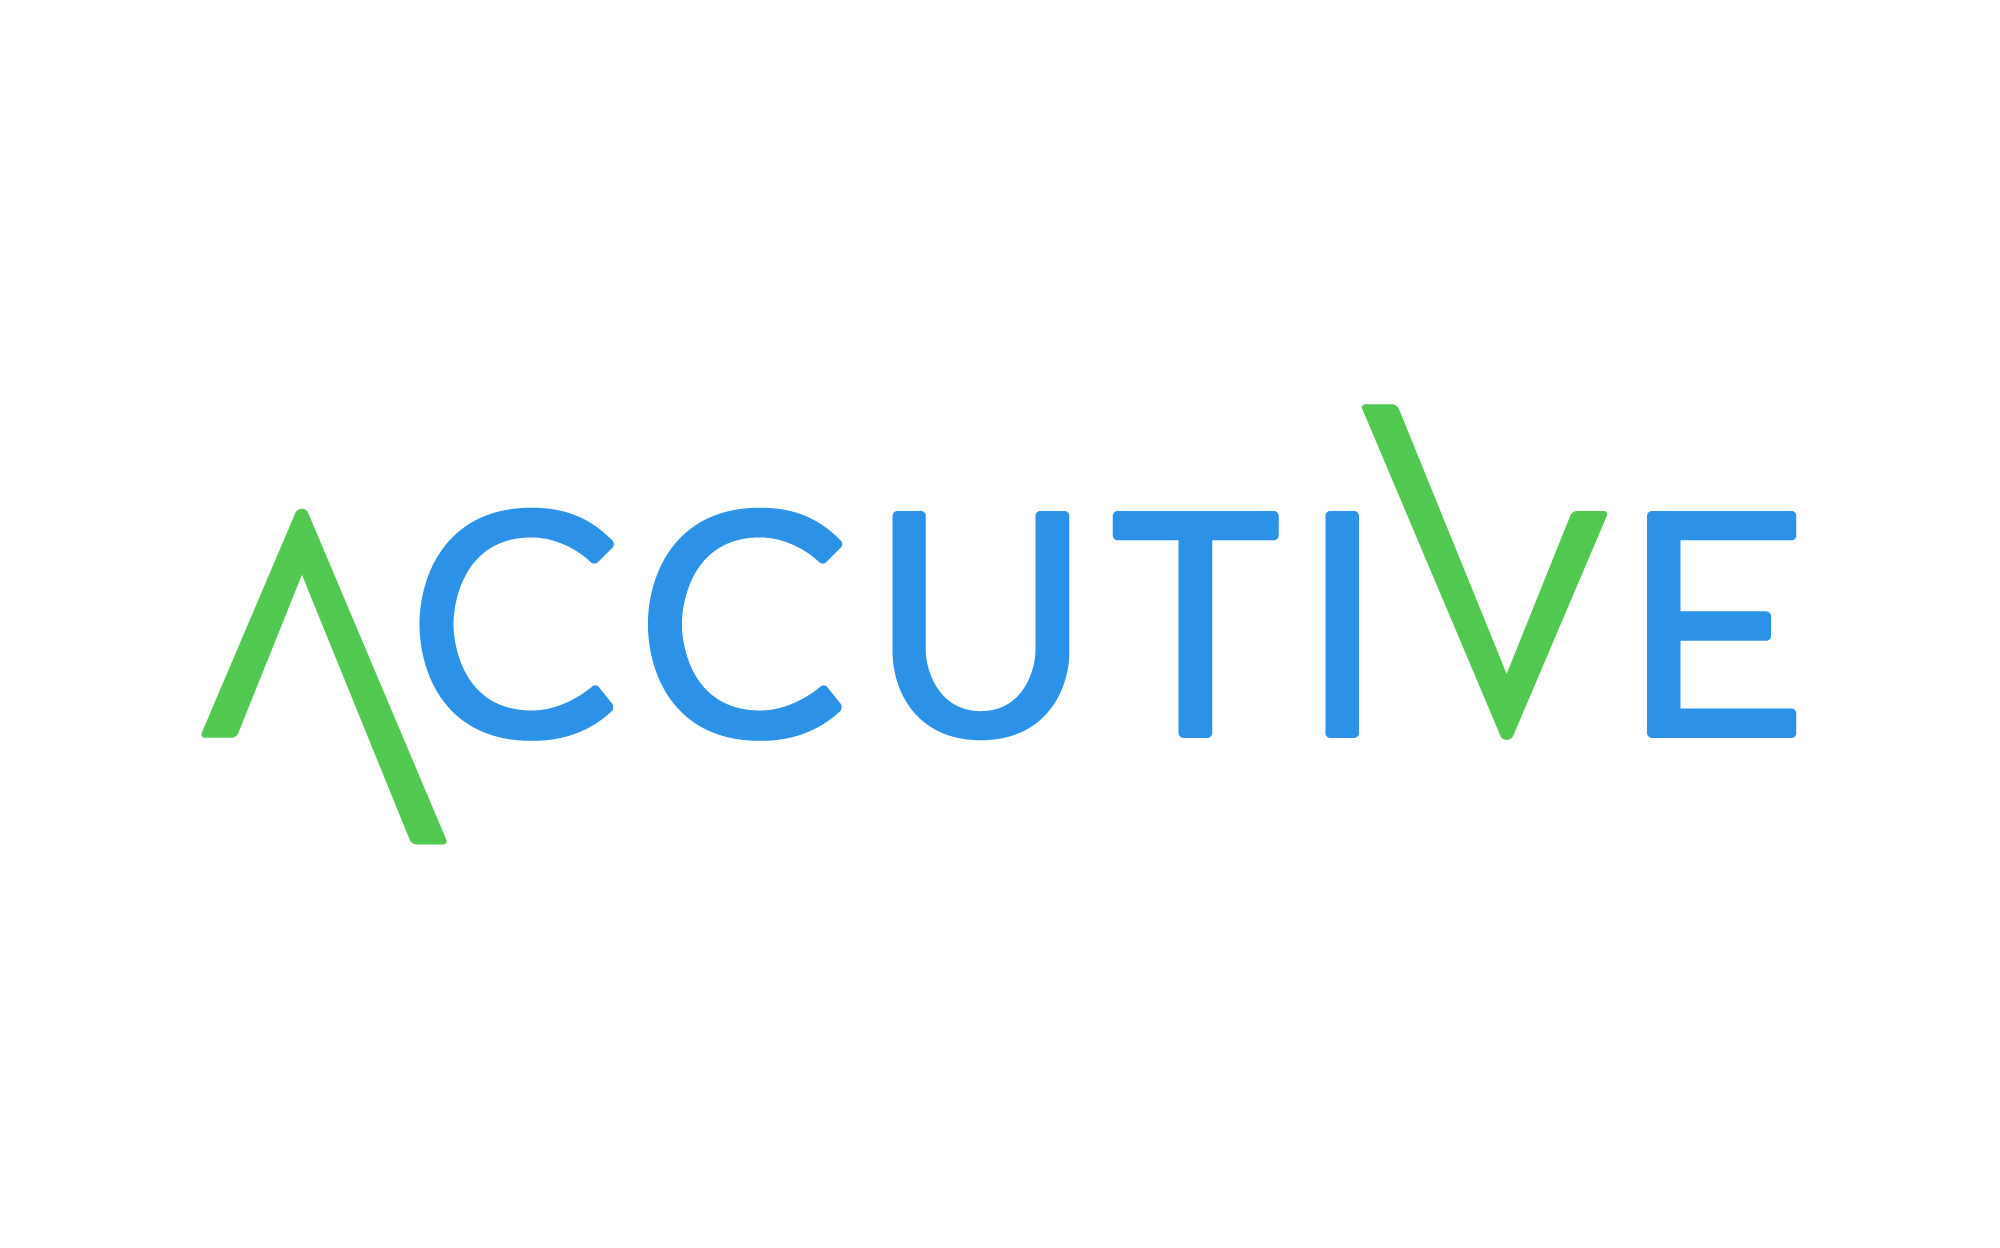 accutive31.png